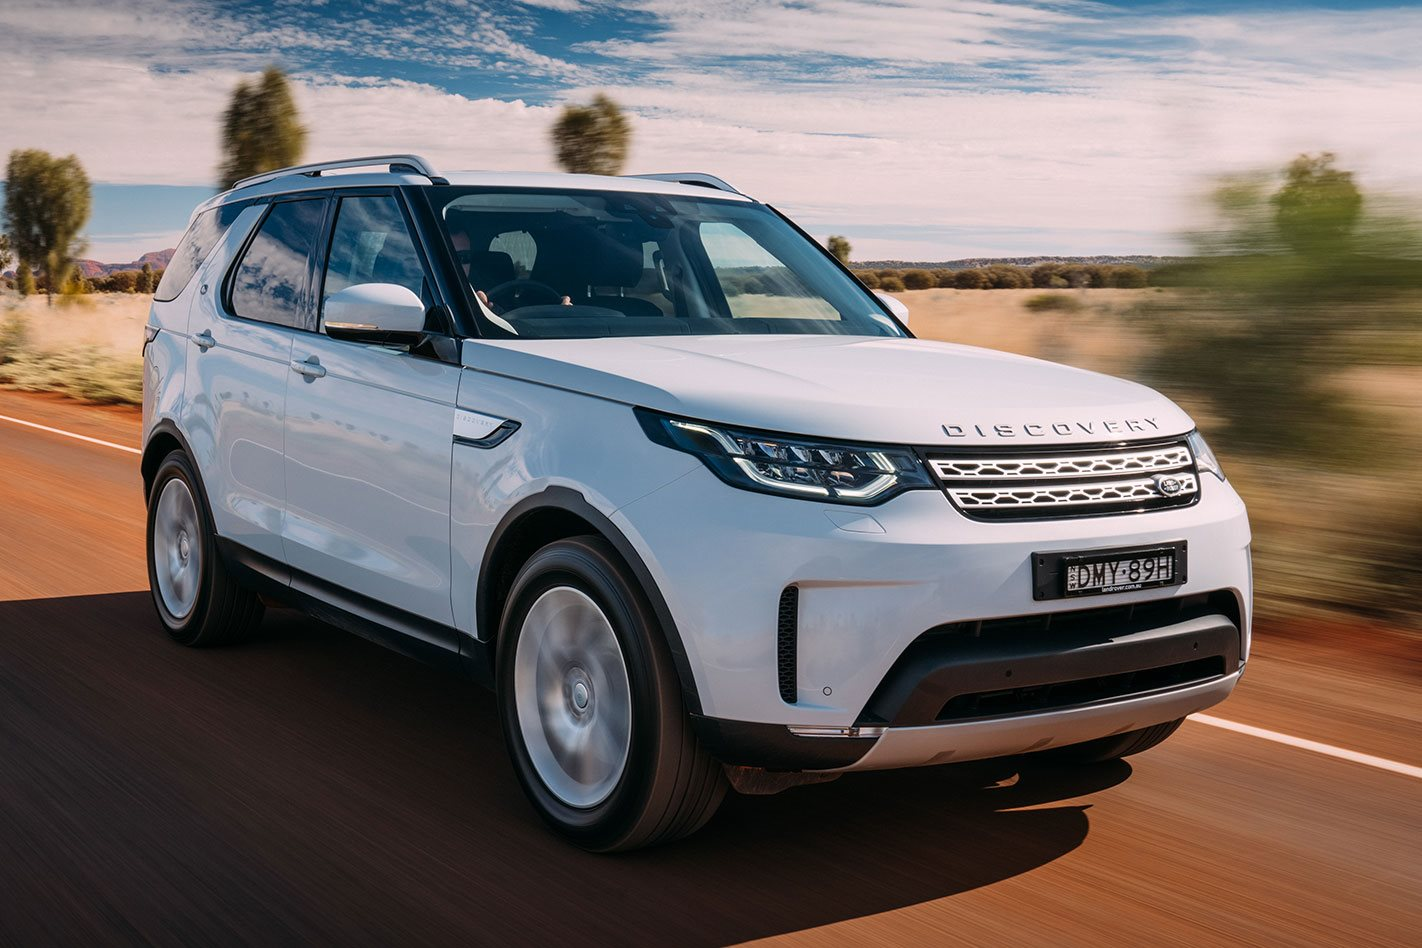 Land Rover Discovery Review, Price & Features